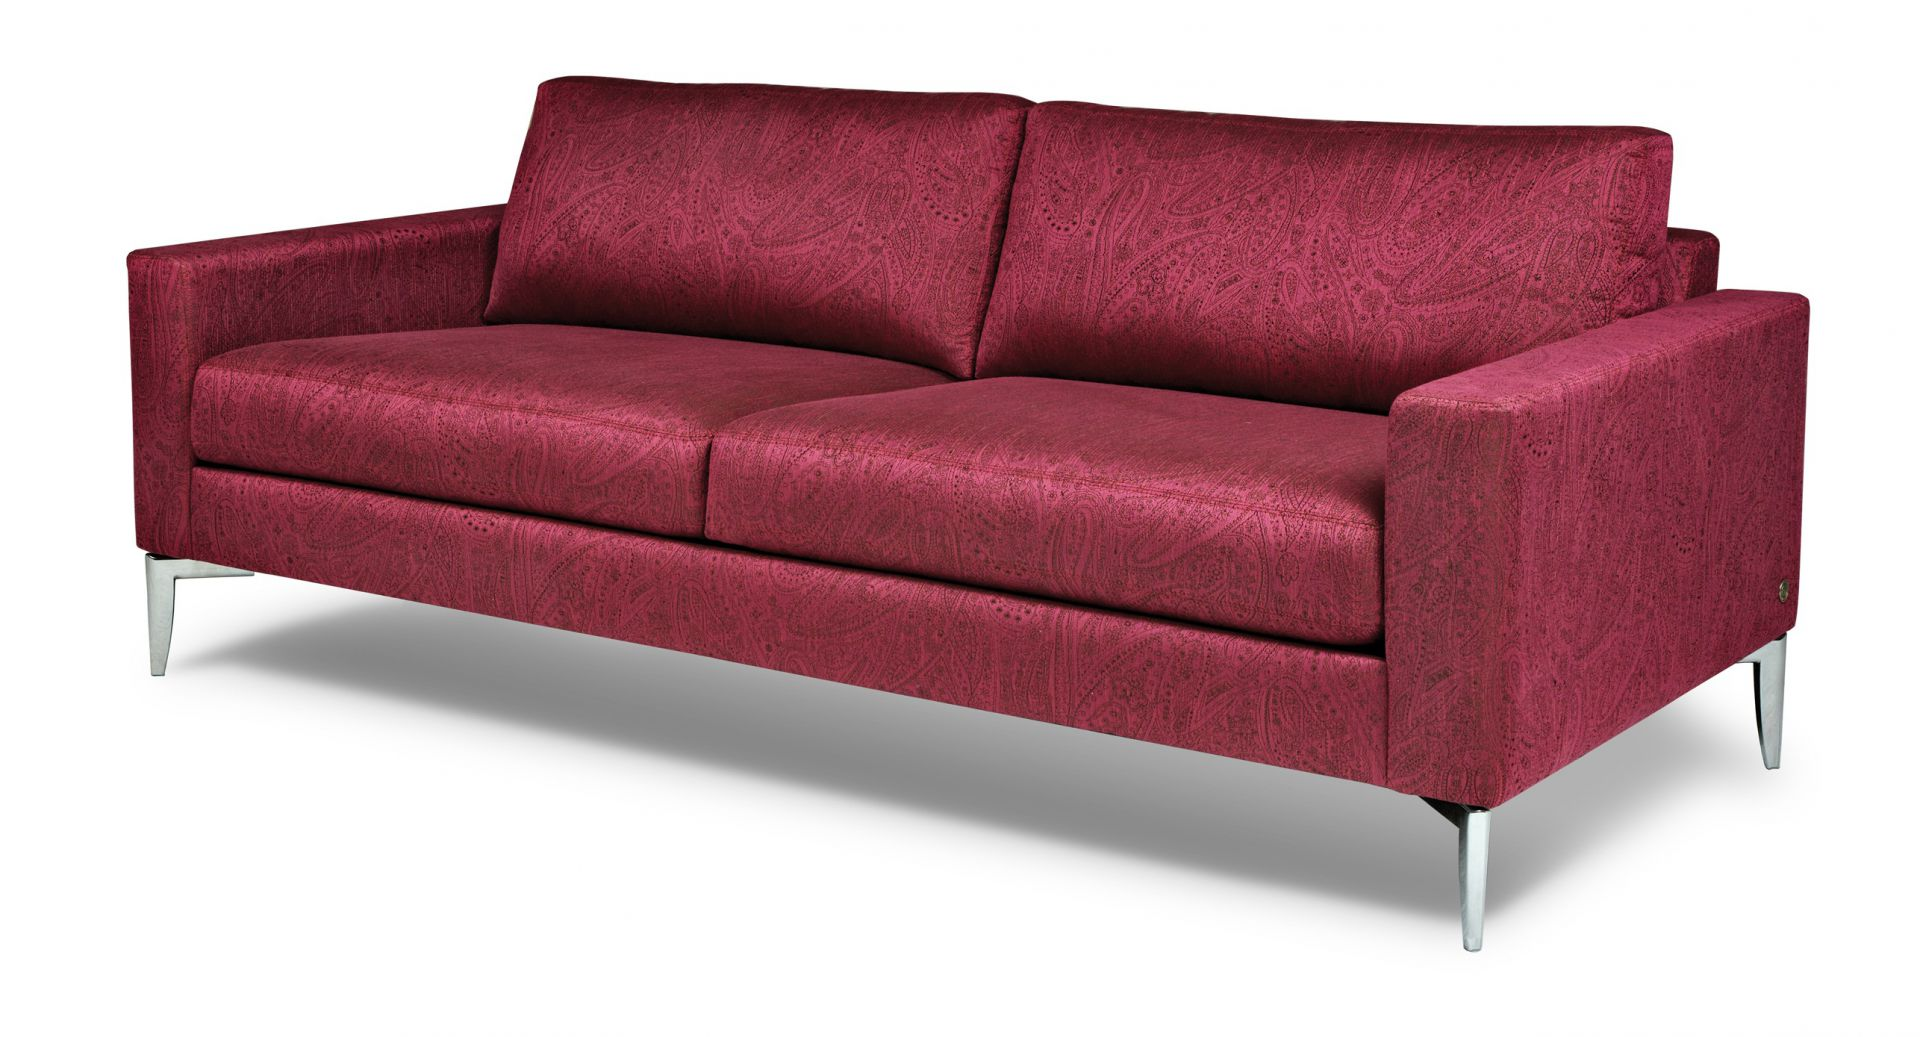 oliver sofa mattresses sets the century house madison wi